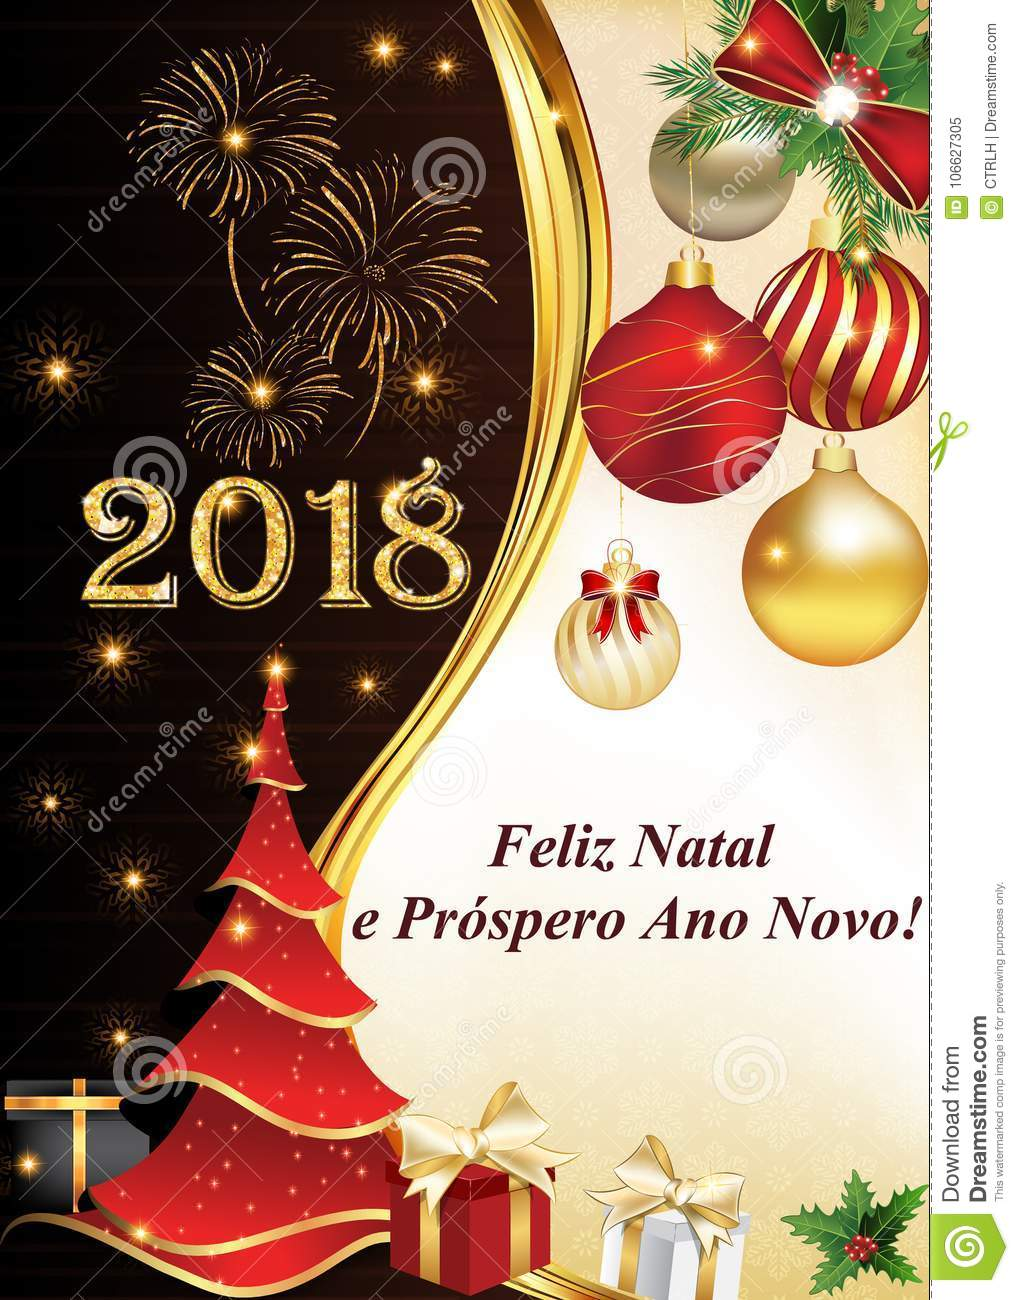 corporate new year 2018 greeting card designed for portuguese speaking clients